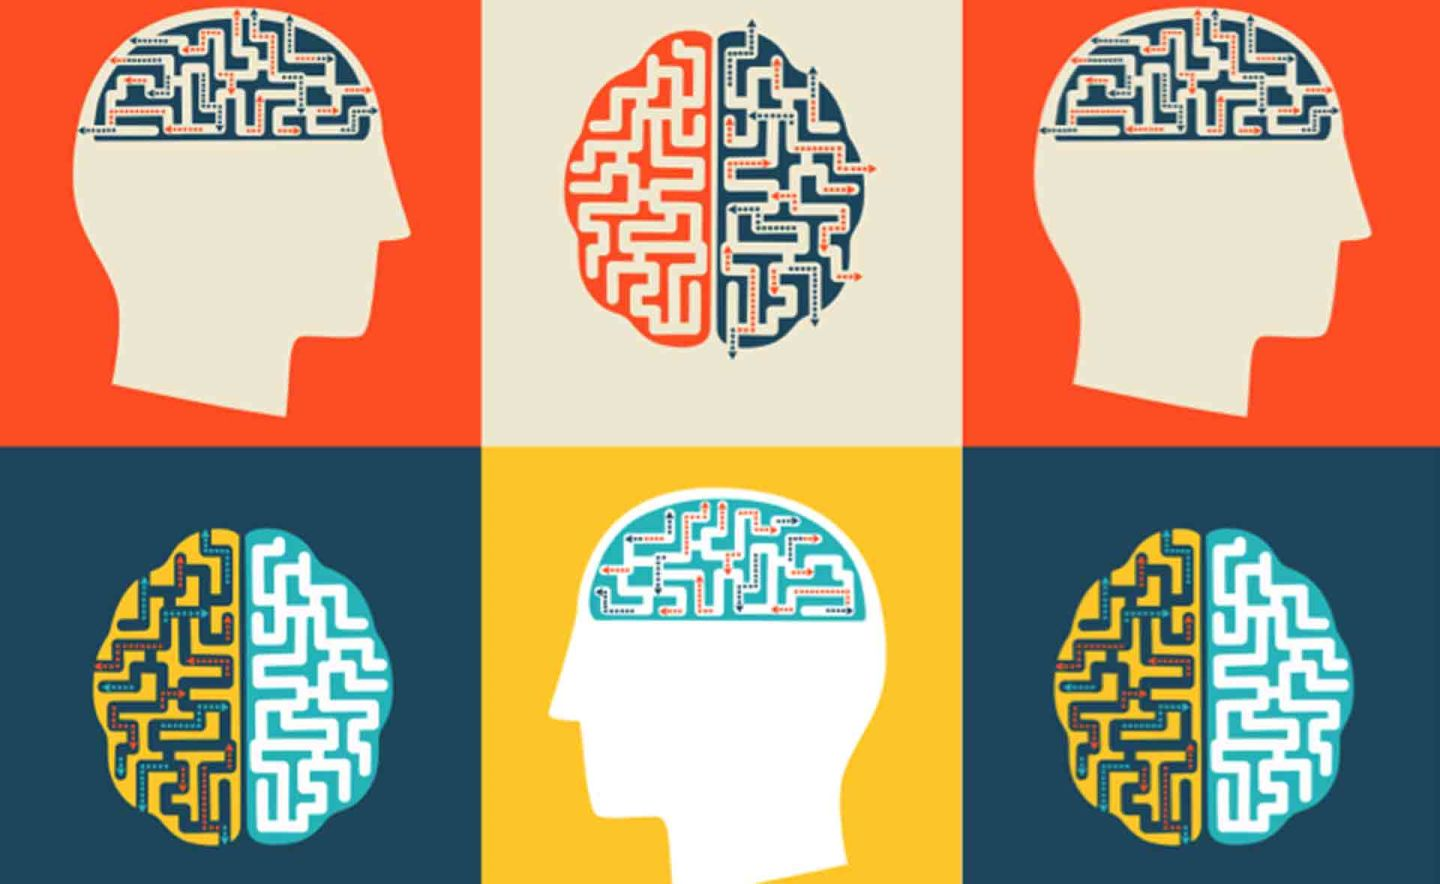 Growth Mindset: Clearing up Some Common Confusions | KQED